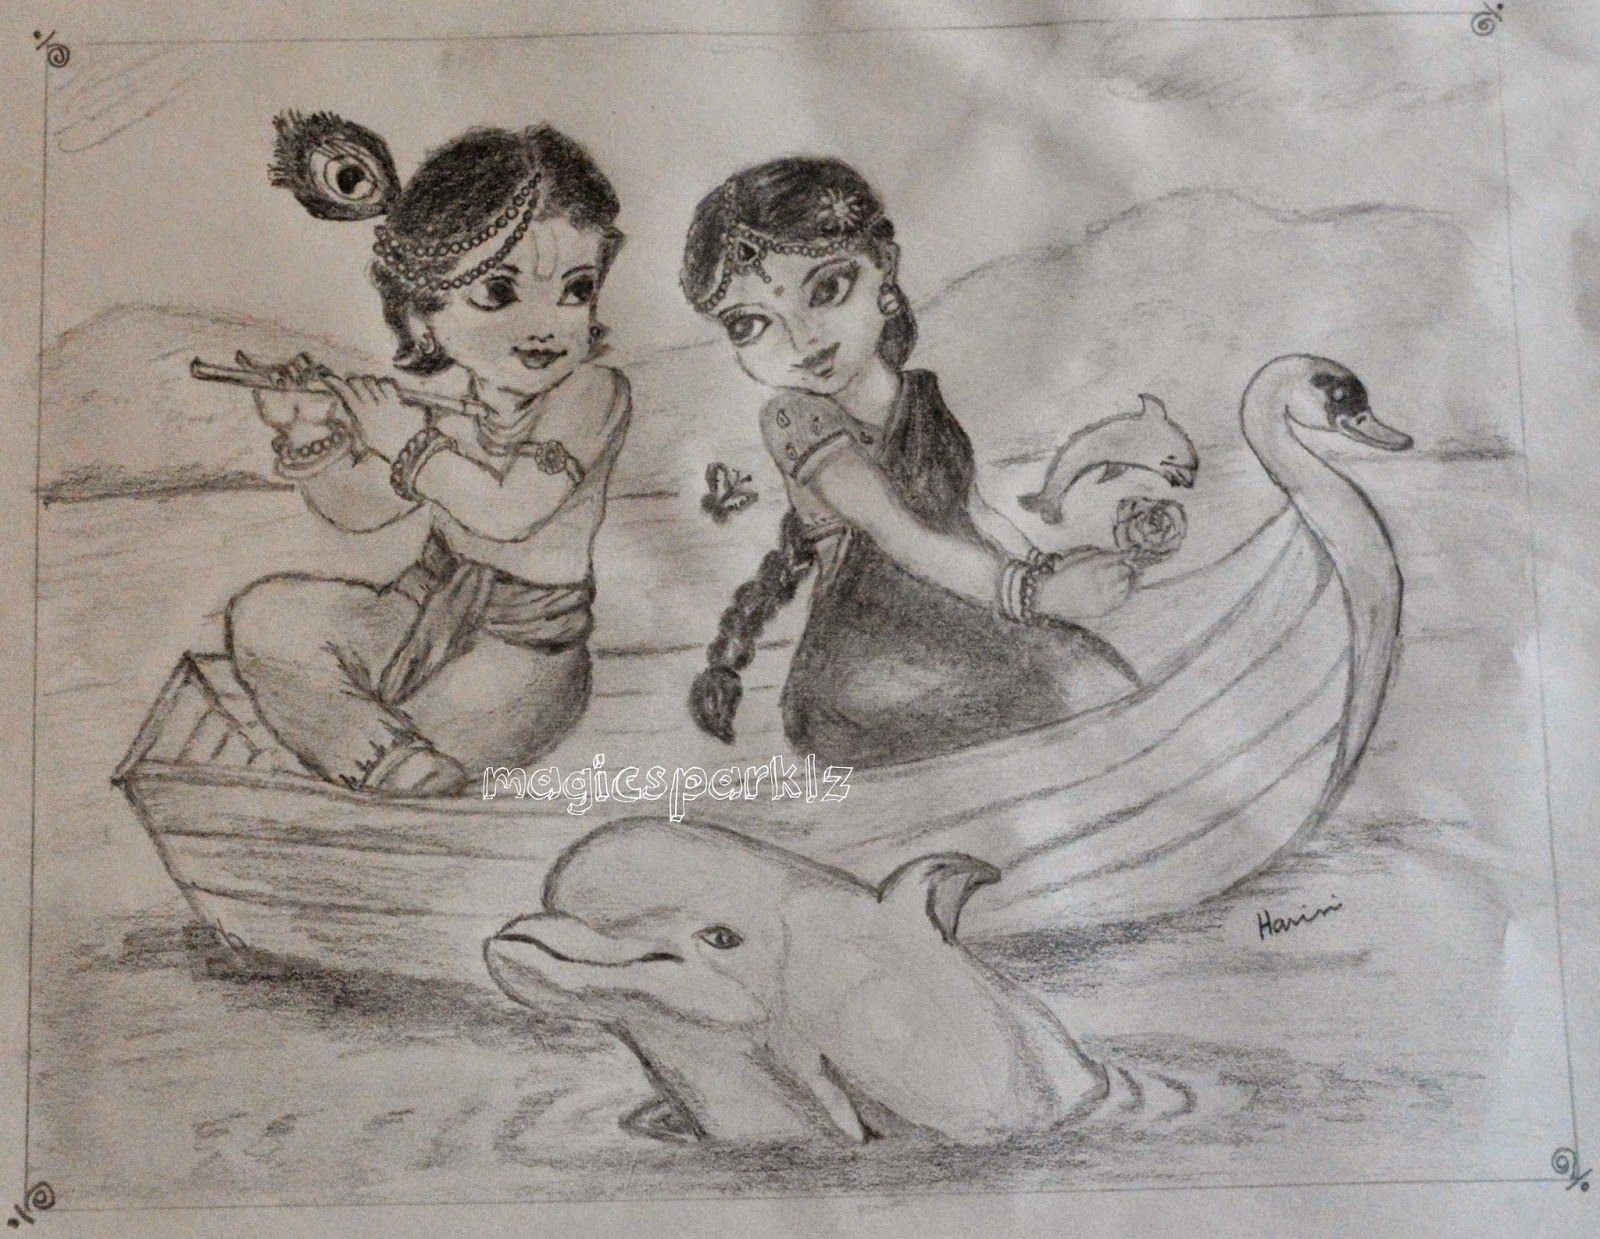 My pencil sketching of cute radha krishna sitting on a boat radha krishna sketch krishna